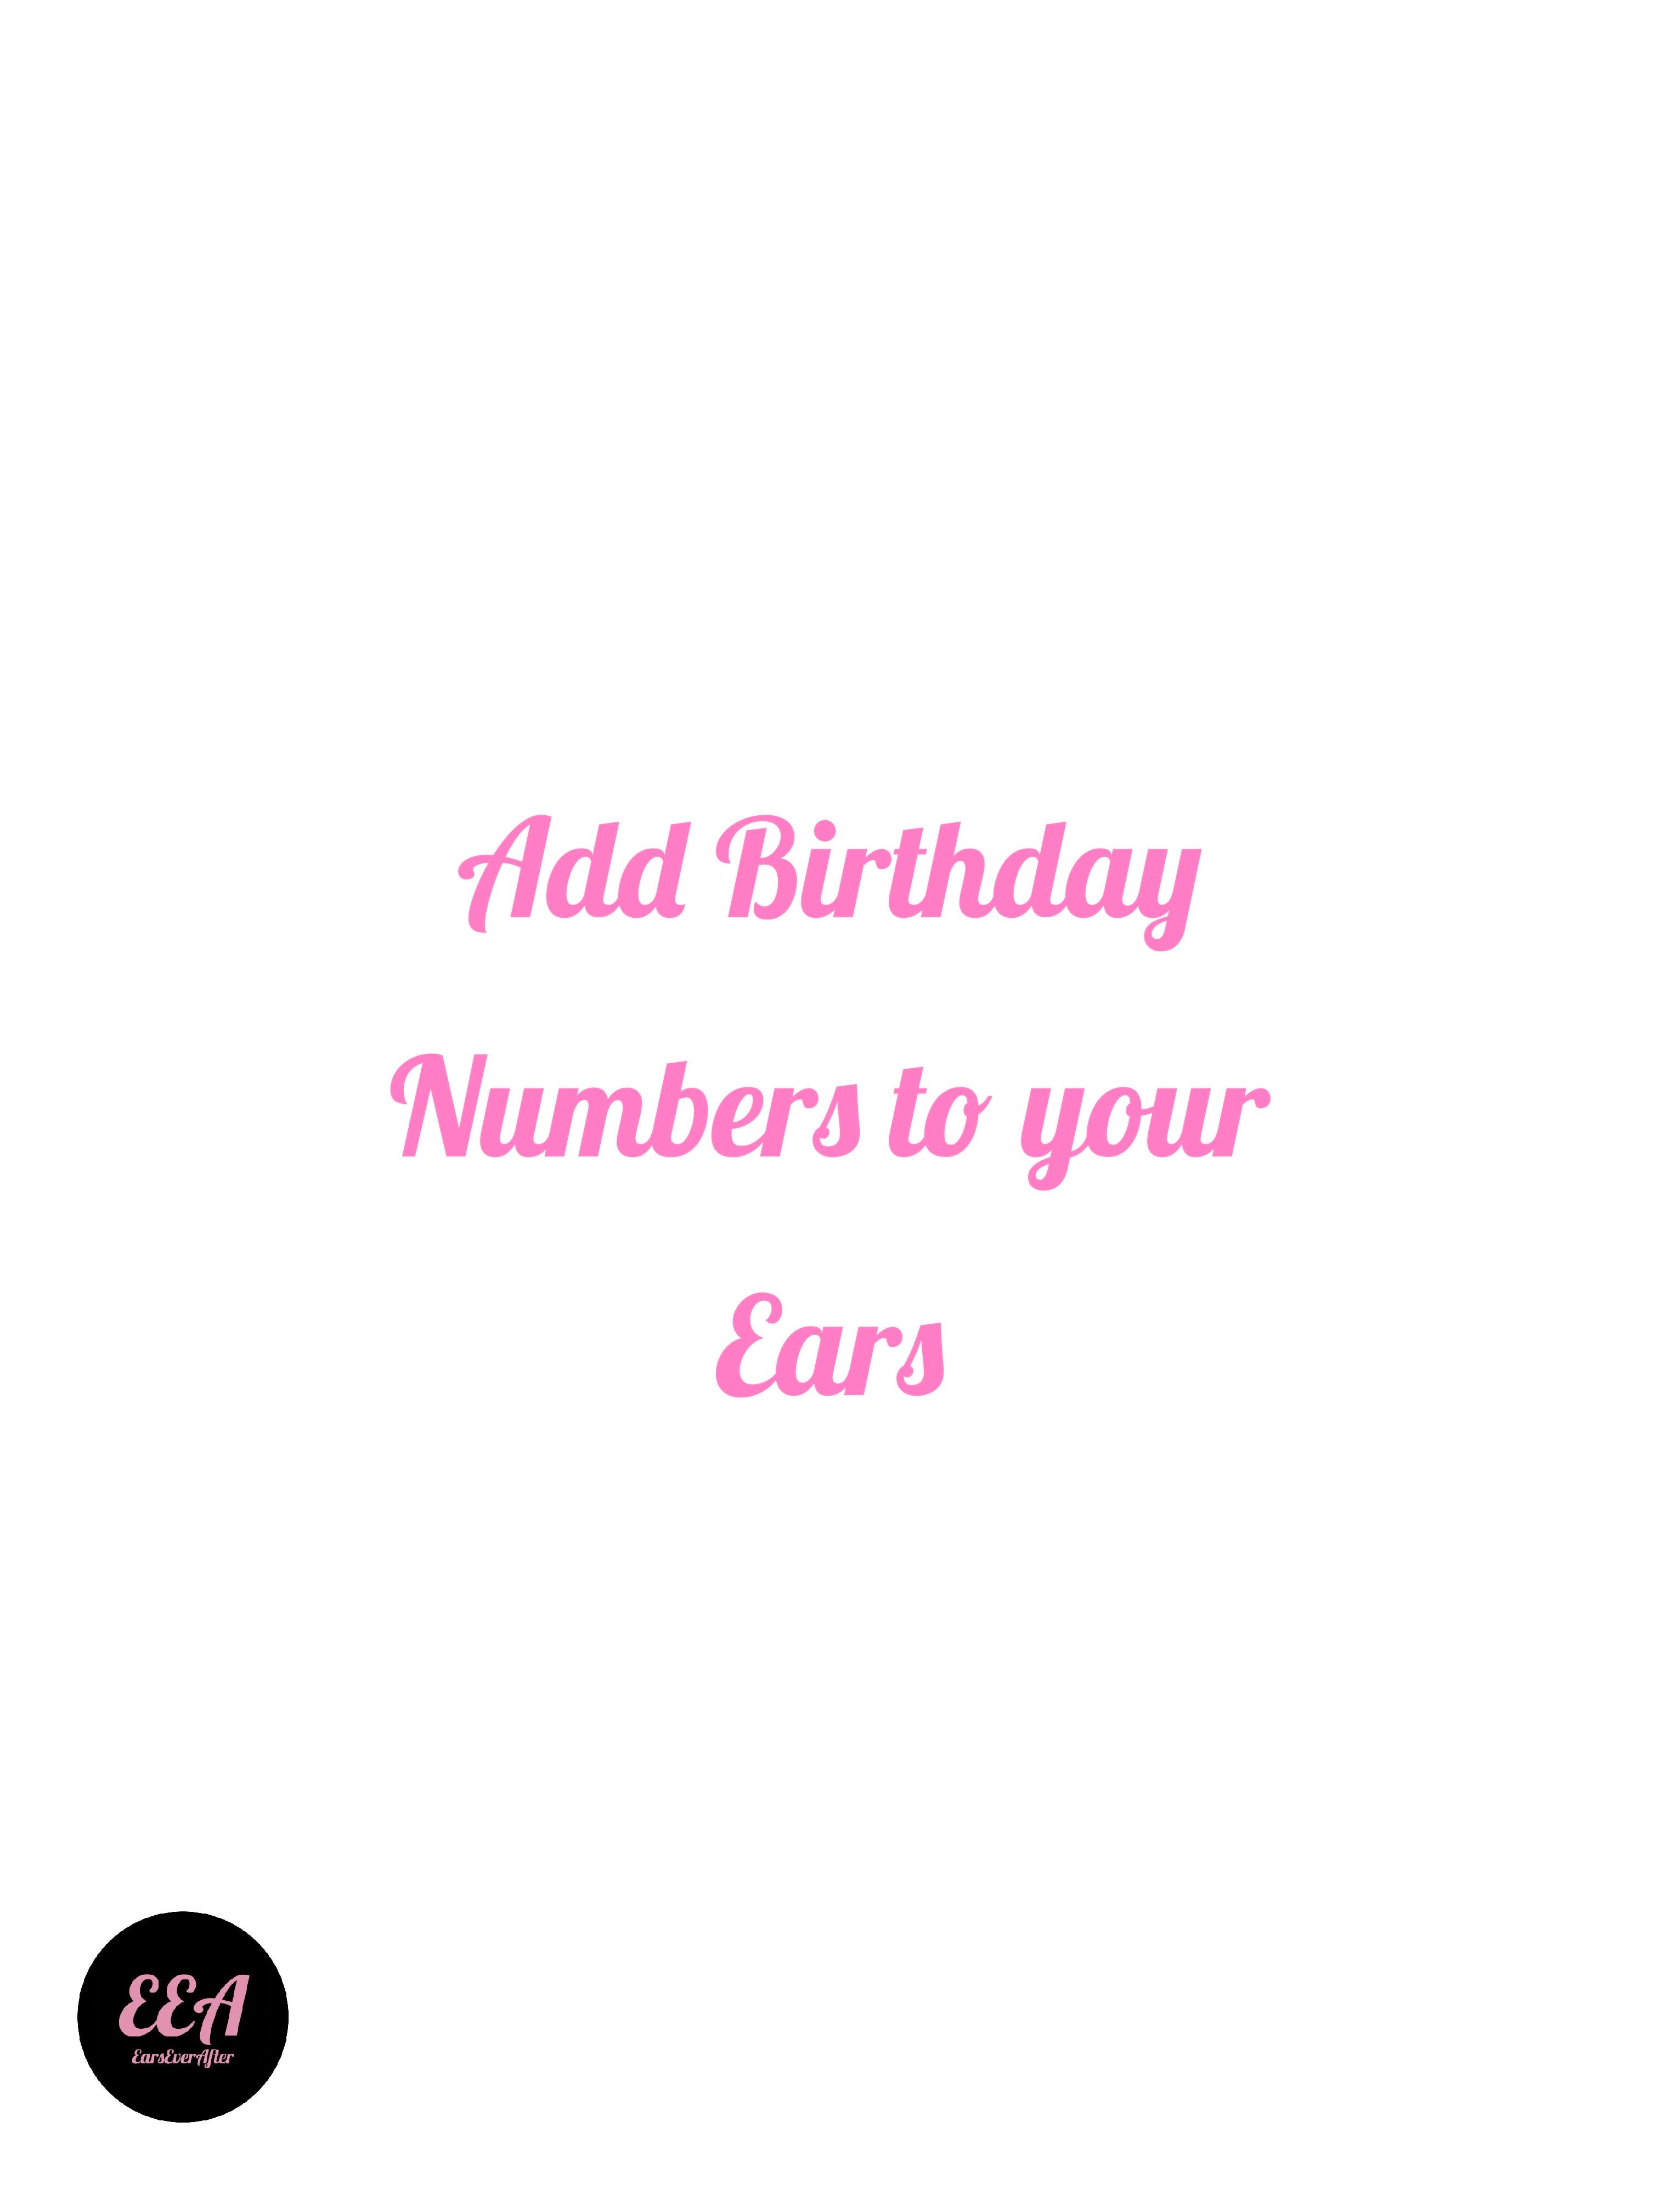 Add Birthday Numbers